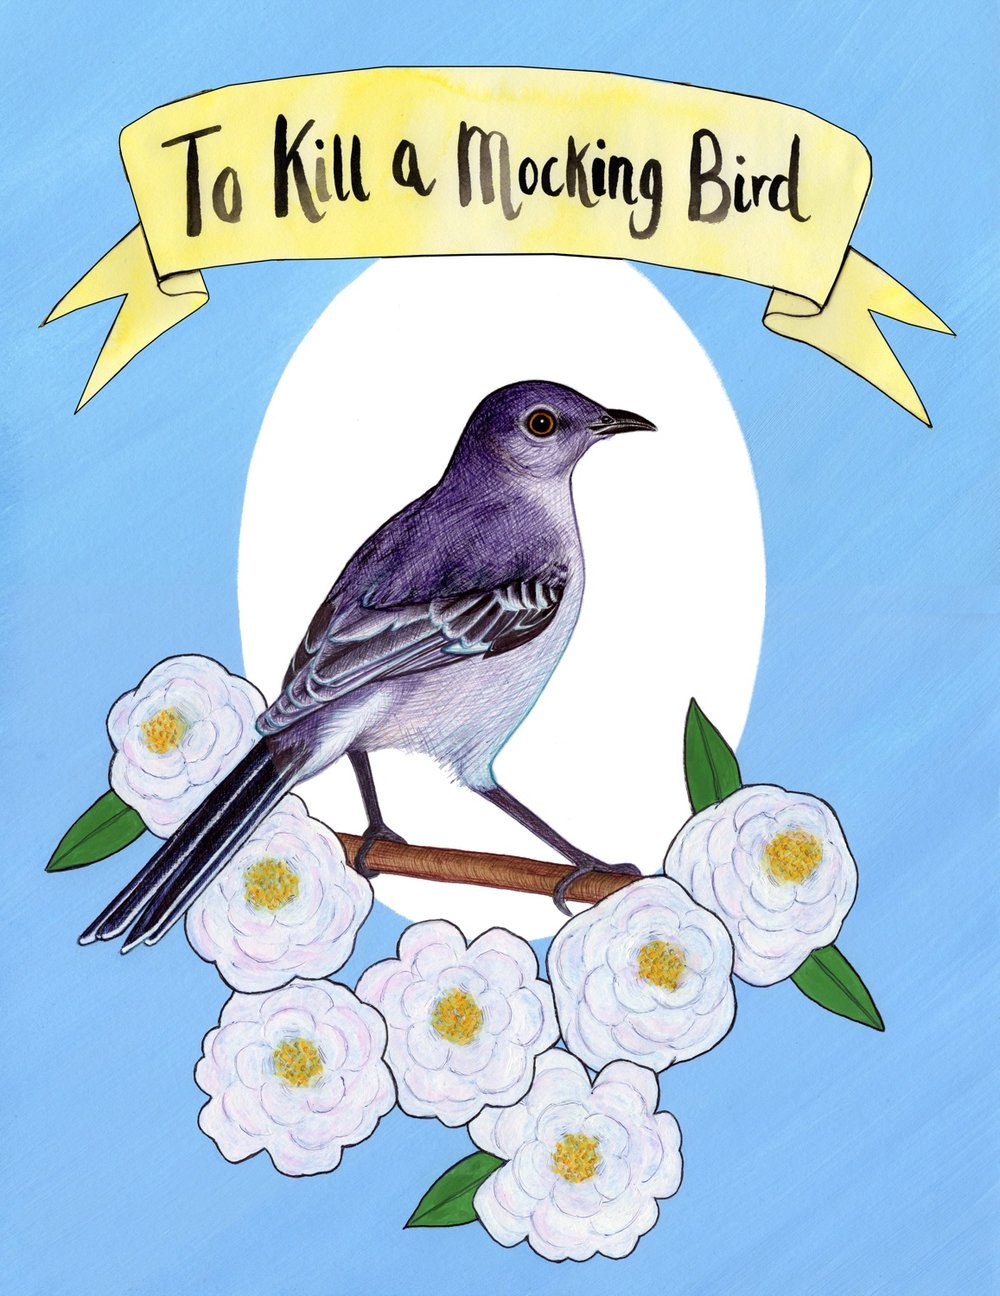 Illustration inspired by 'To Kill a Mocking Bird' by Harper Lee